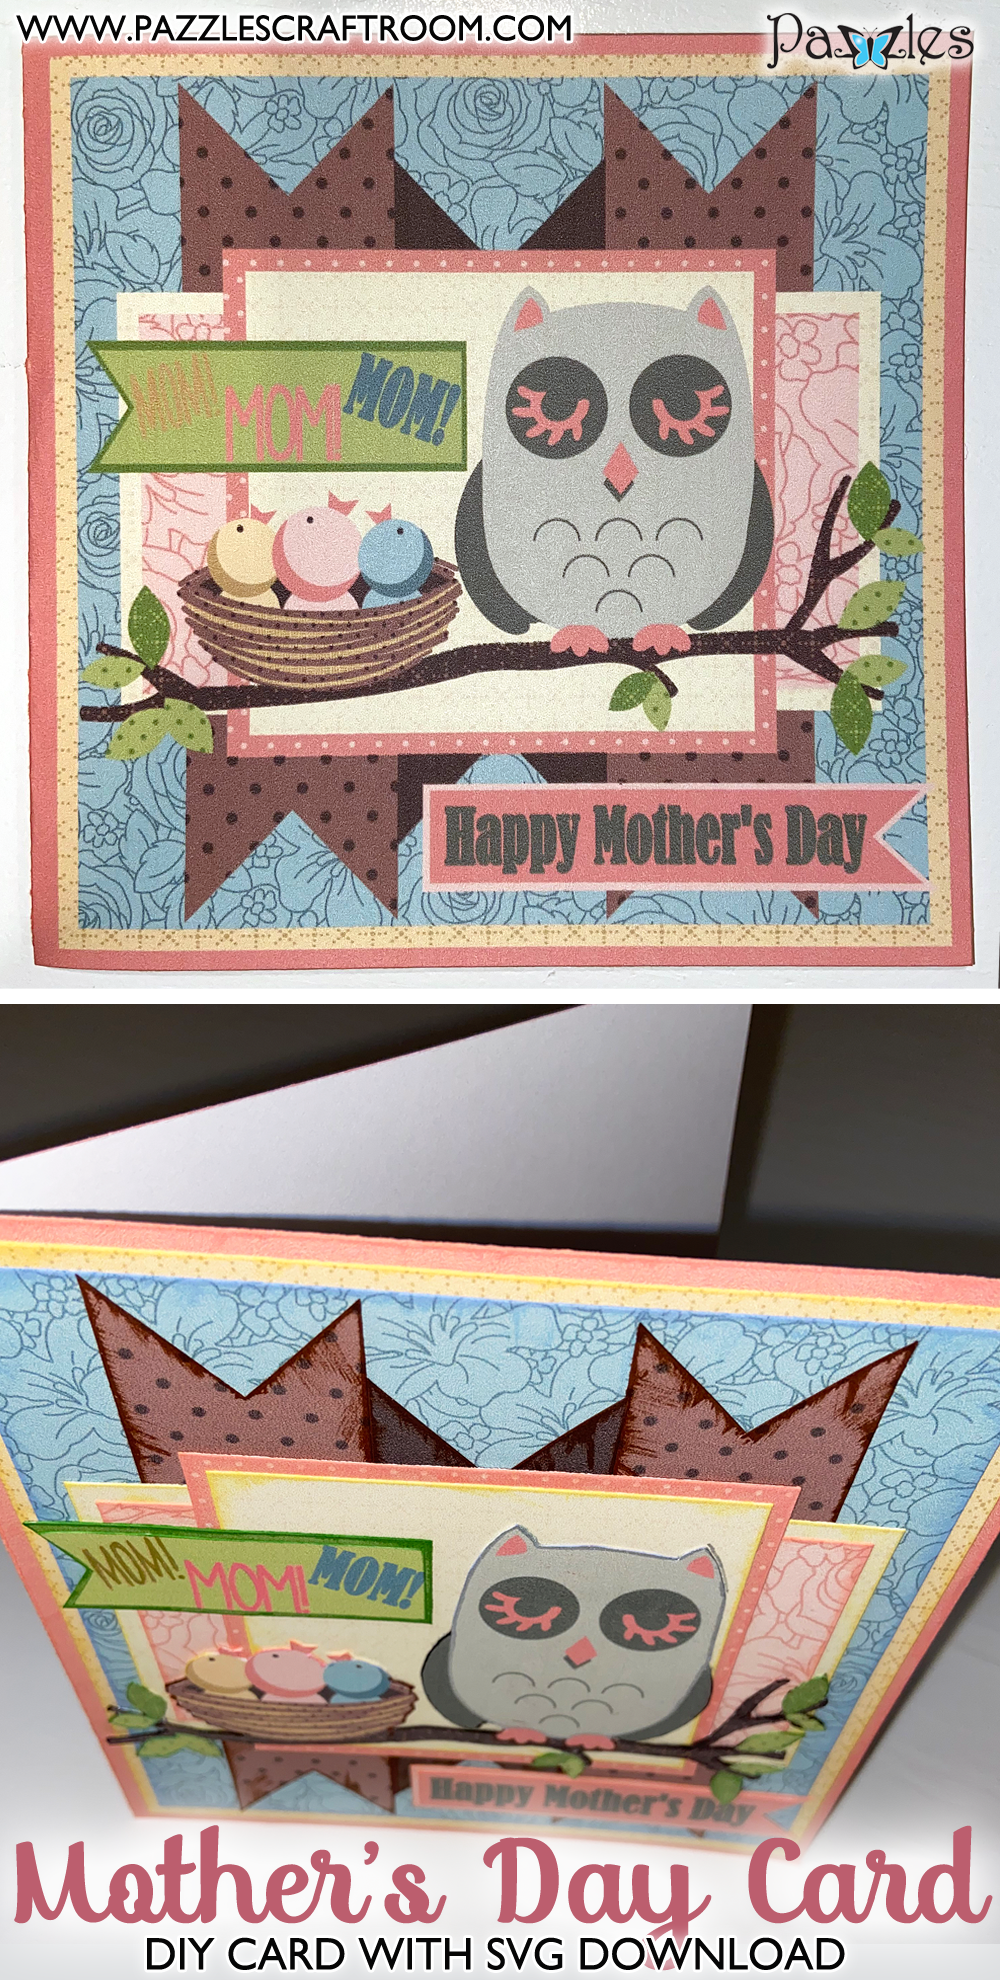 Pazzles DIY Happy Mother's Day Card with instant SVG download. Instant SVG download compatible with all major electronic cutters including Pazzles Inspiration, Cricut, and Silhouette Cameo. Design by Sara Weber. v